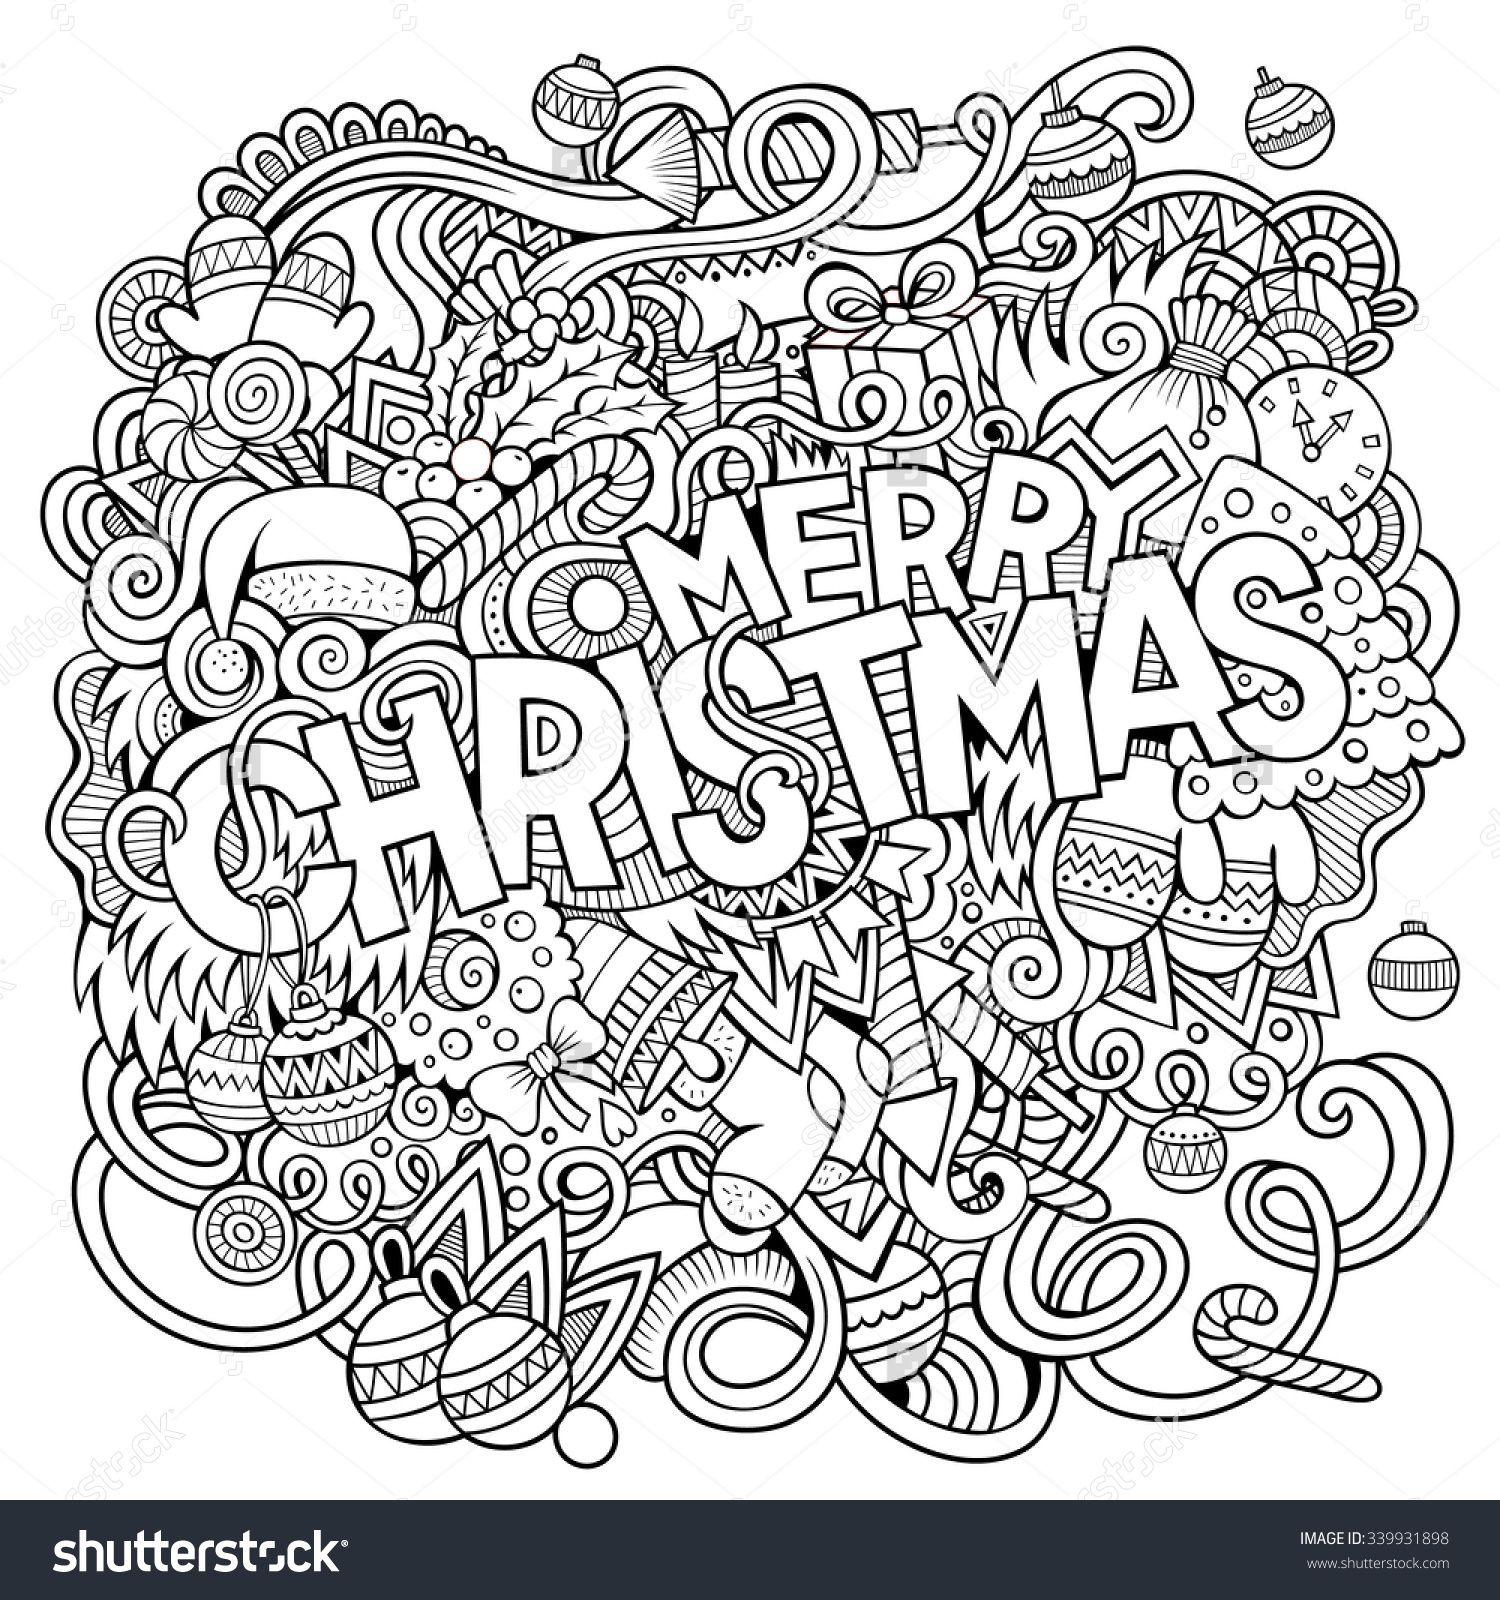 Merry Christmas Hand Lettering And Doodles Elements